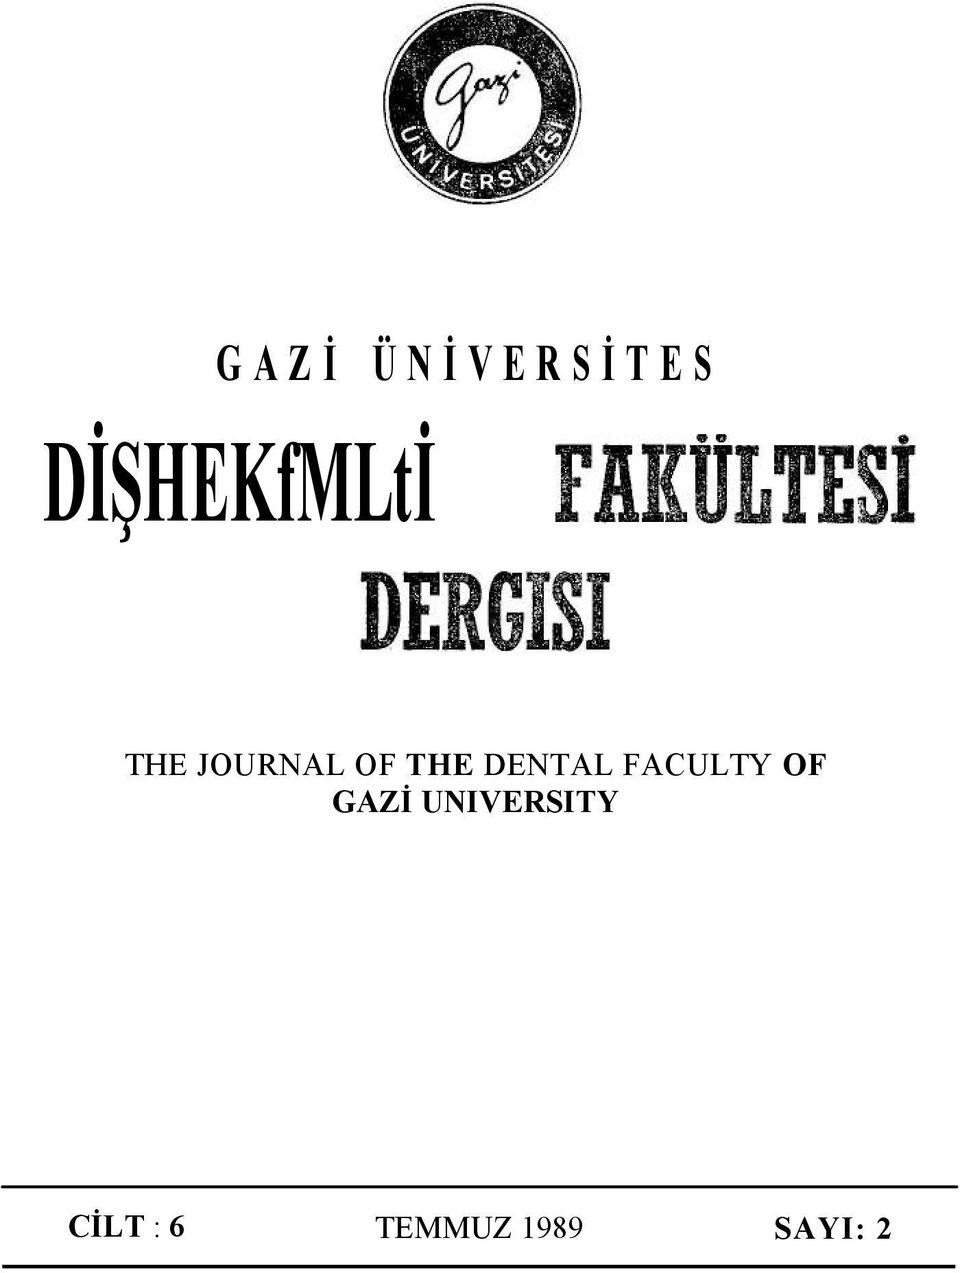 THE DENTAL FACULTY OF GAZİ